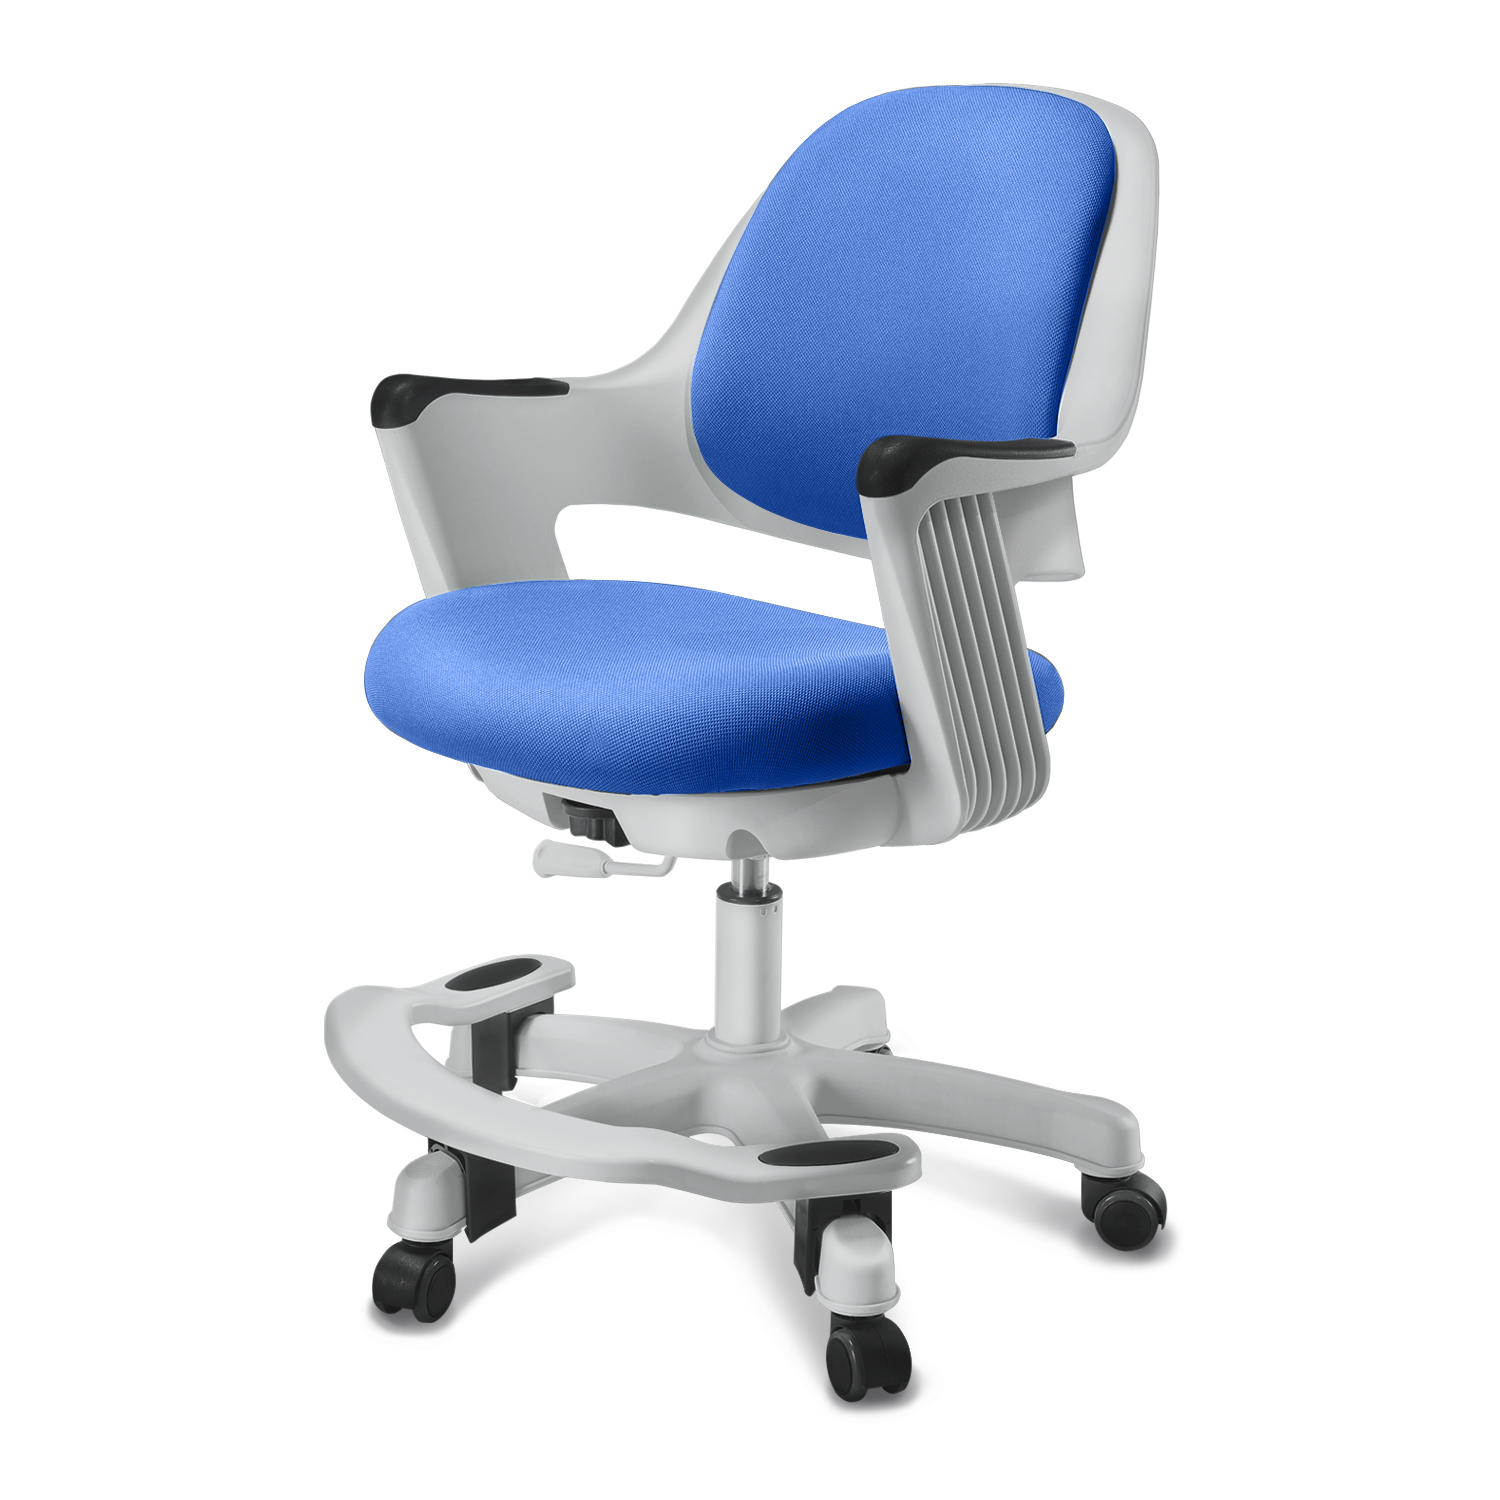 SitRite Children Chair Blue Grayscale image